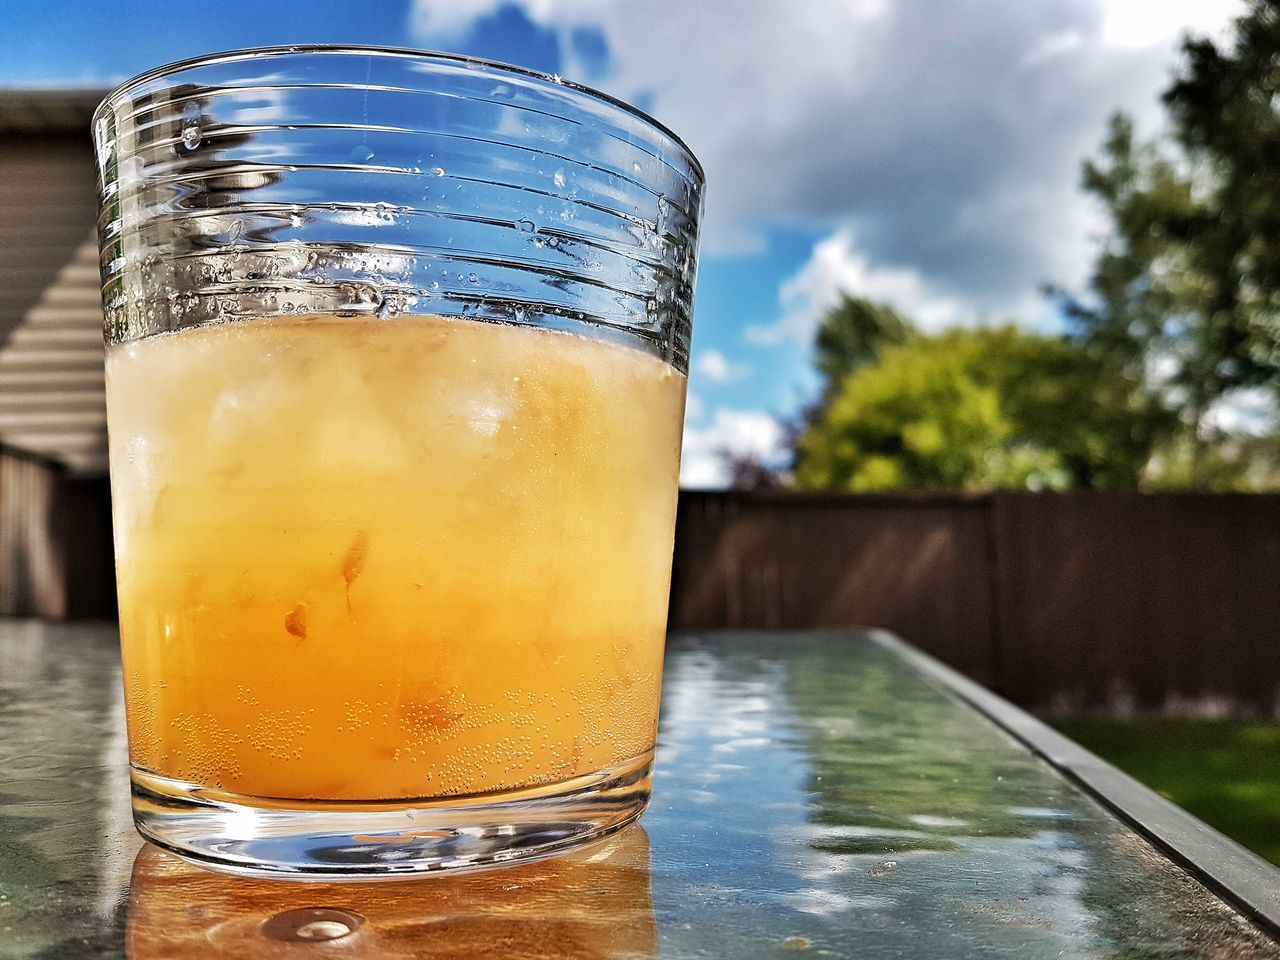 Paloma Paloma Coctail Coctail Hour Tequilla Unwind Relaxing Relax Backyard Drink Drinking Highball